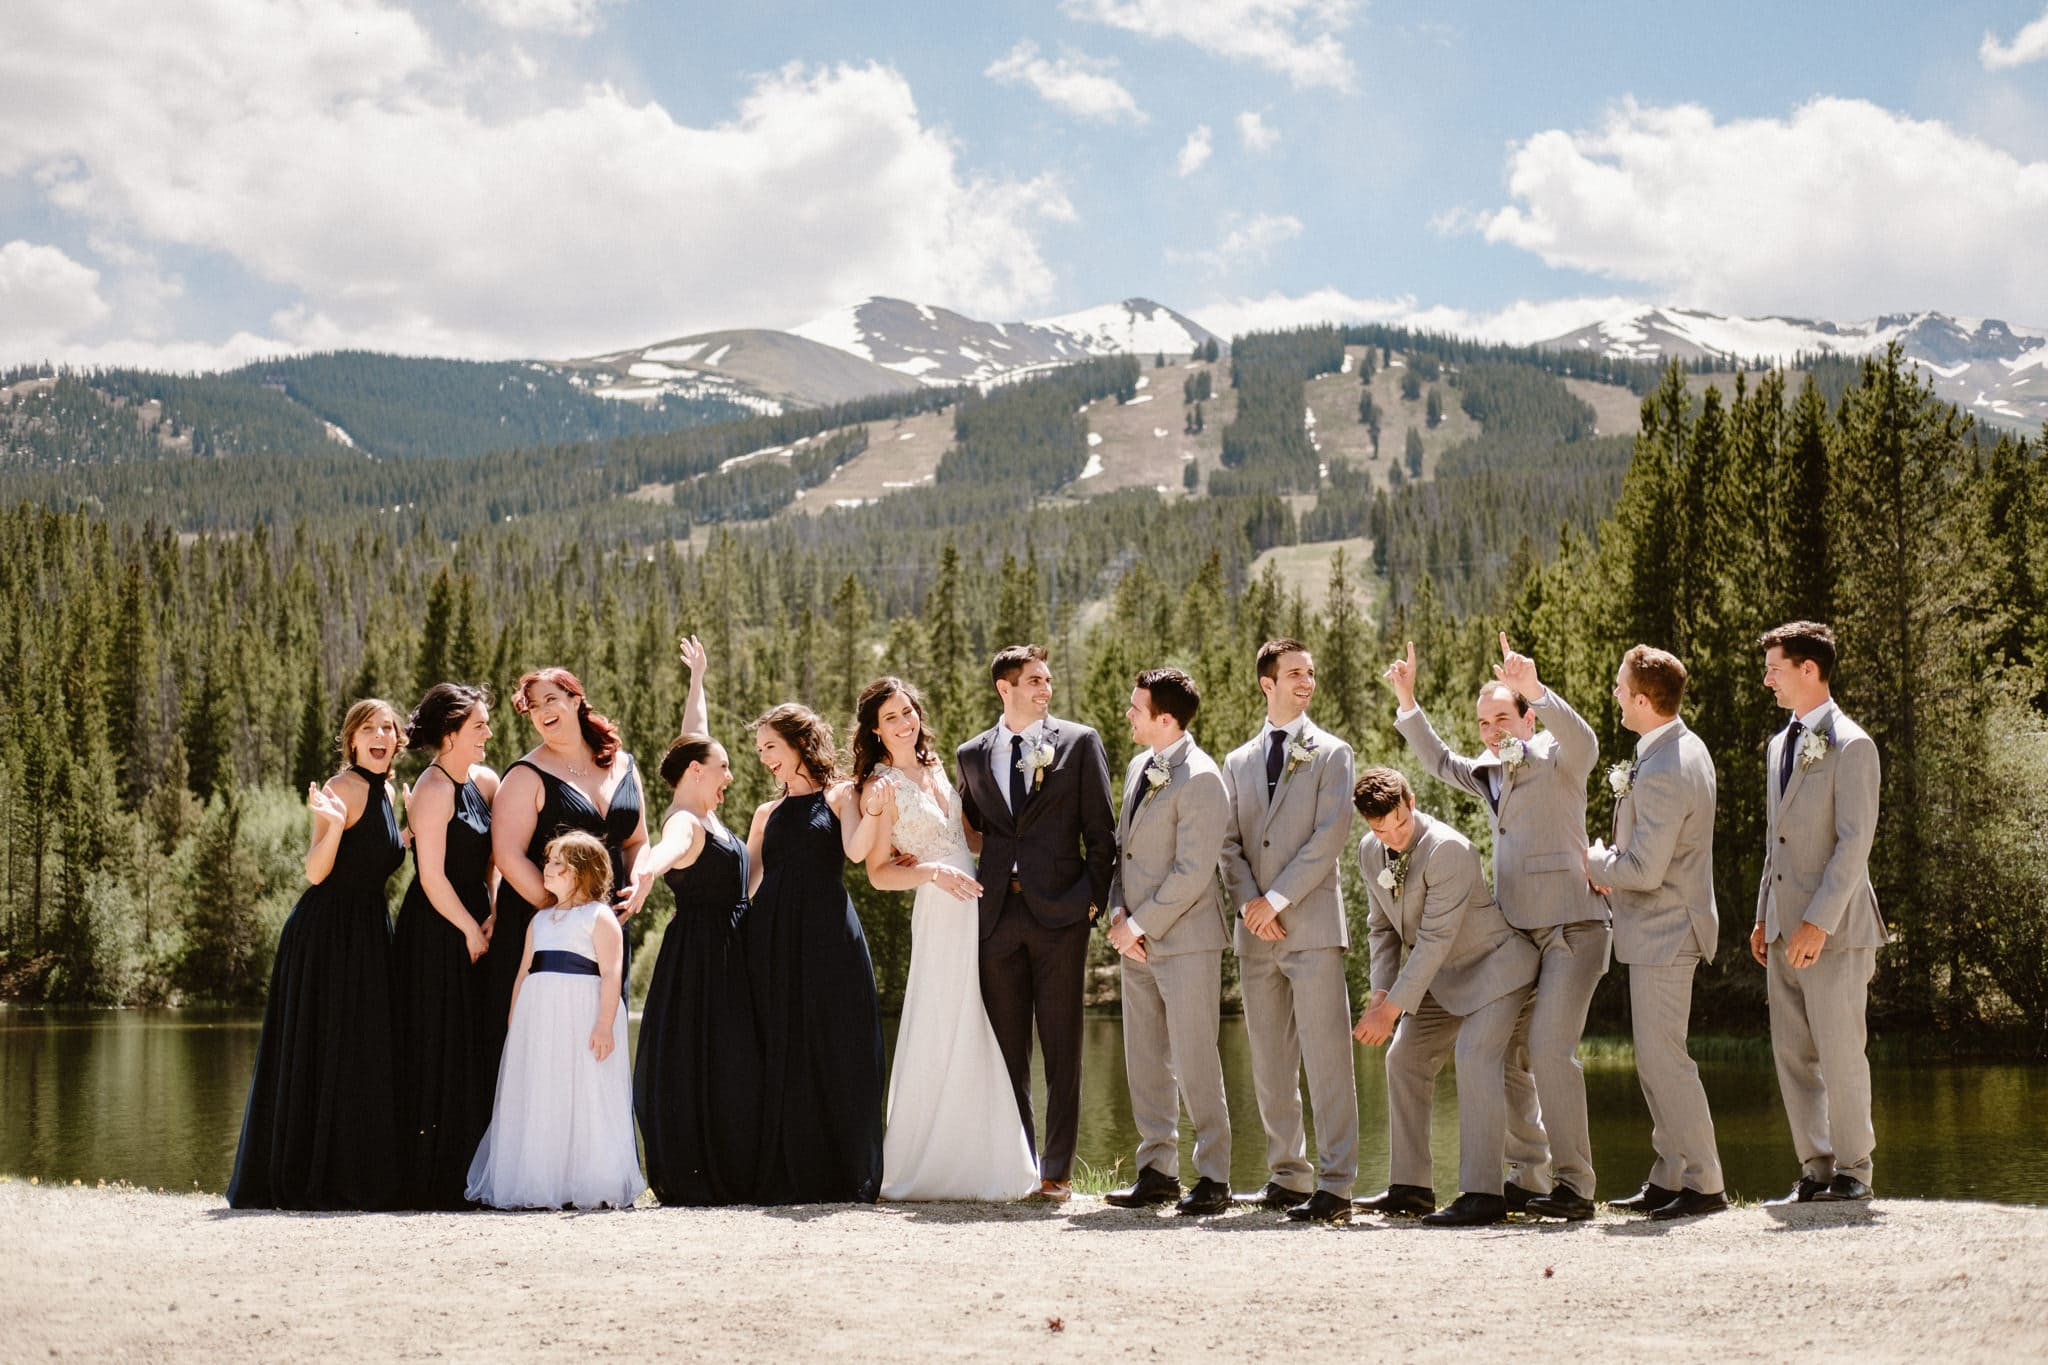 Wedding Party photos at Sawmill Reservoir in Breckenridge, Colorado wedding photographer